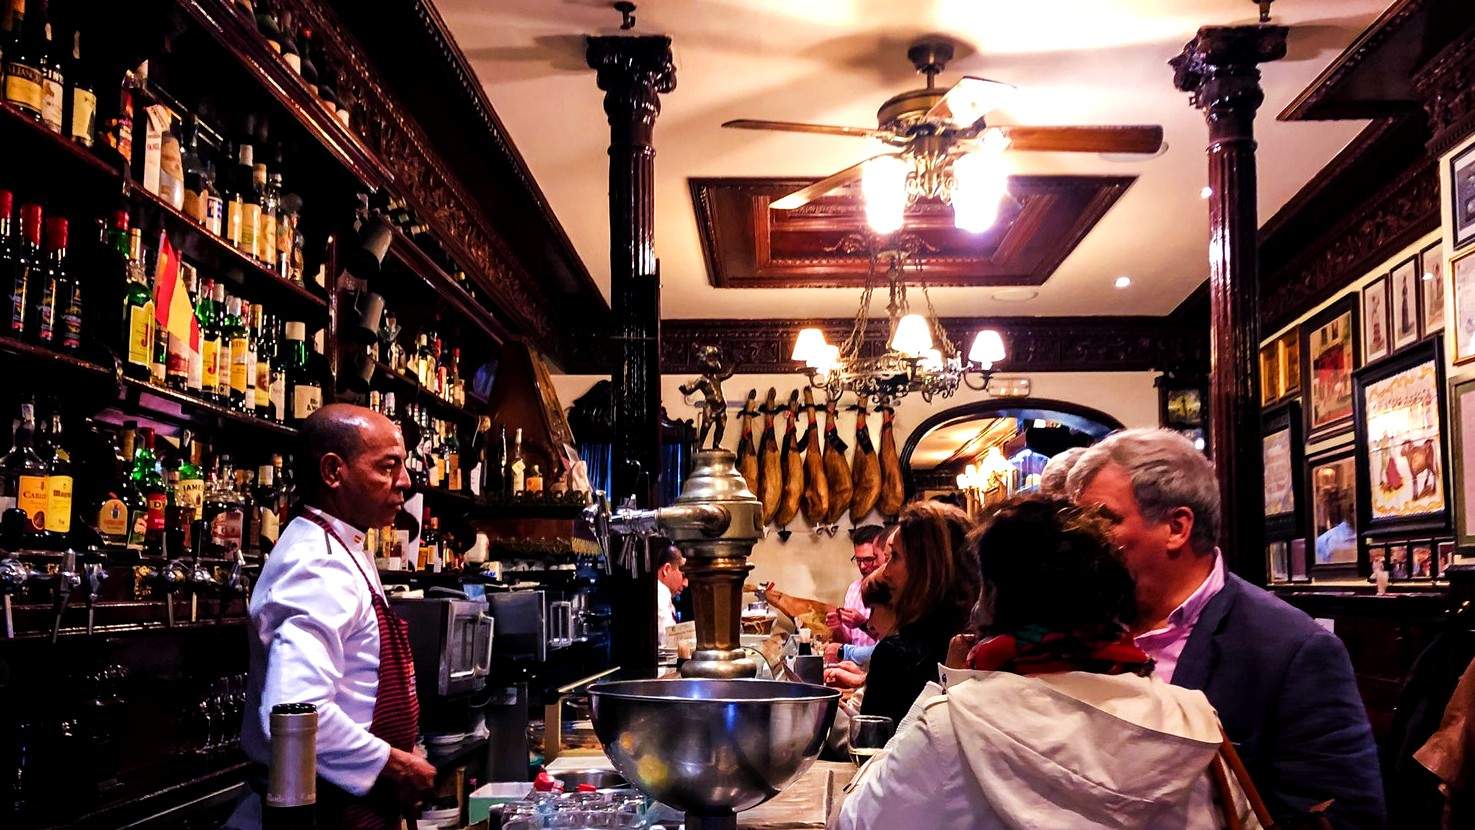 Poble Sec - Best areas to stay in Barcelona for nightlife